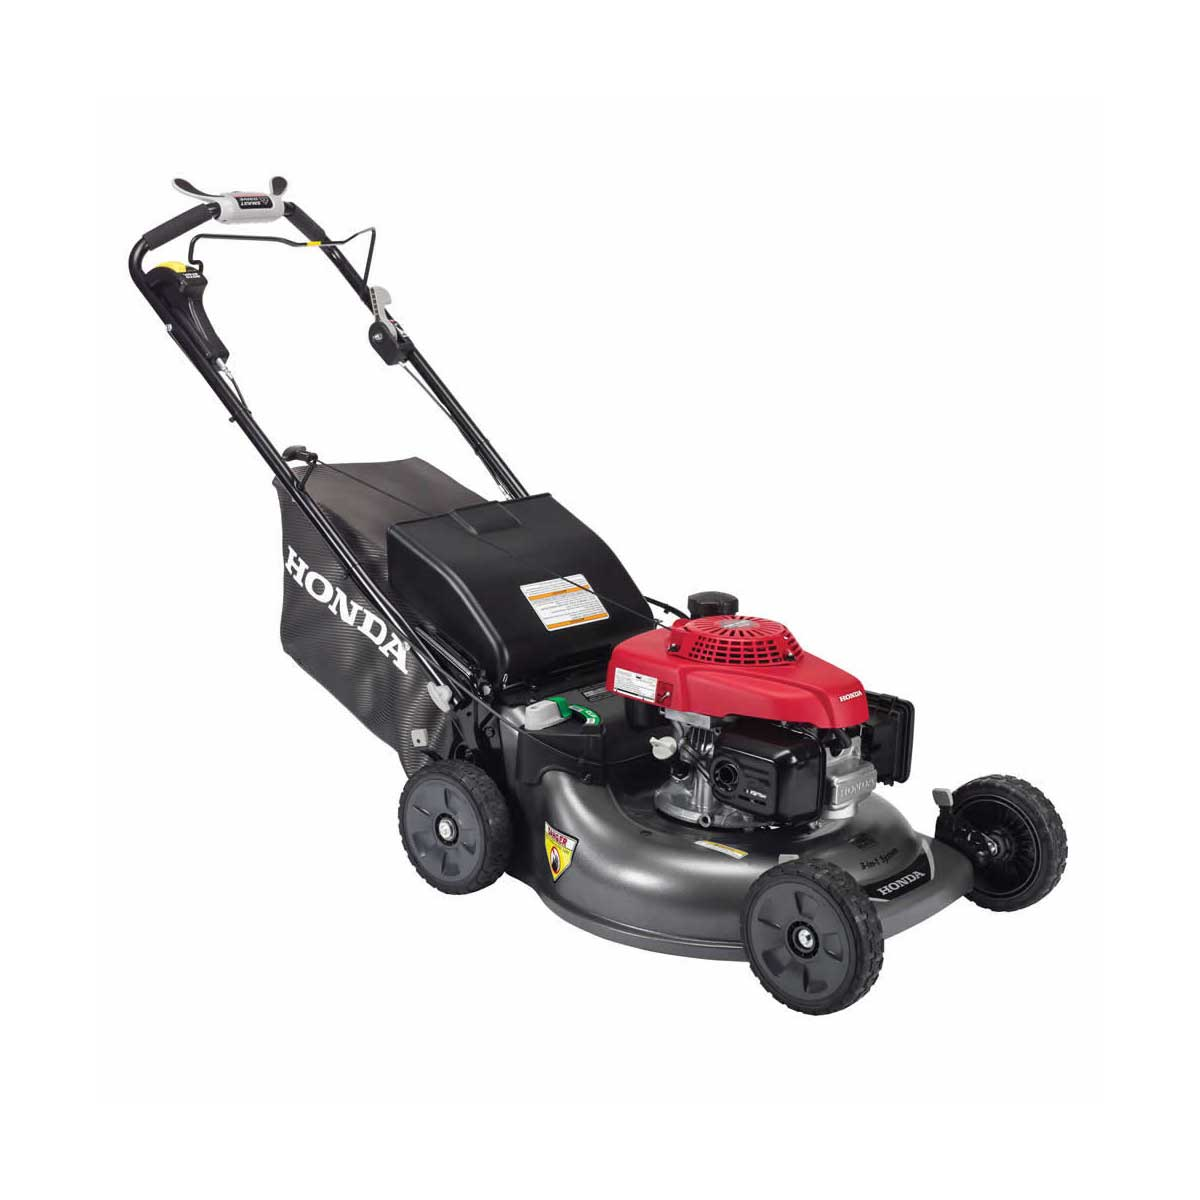 Honda Lawnmower HRR216VYA